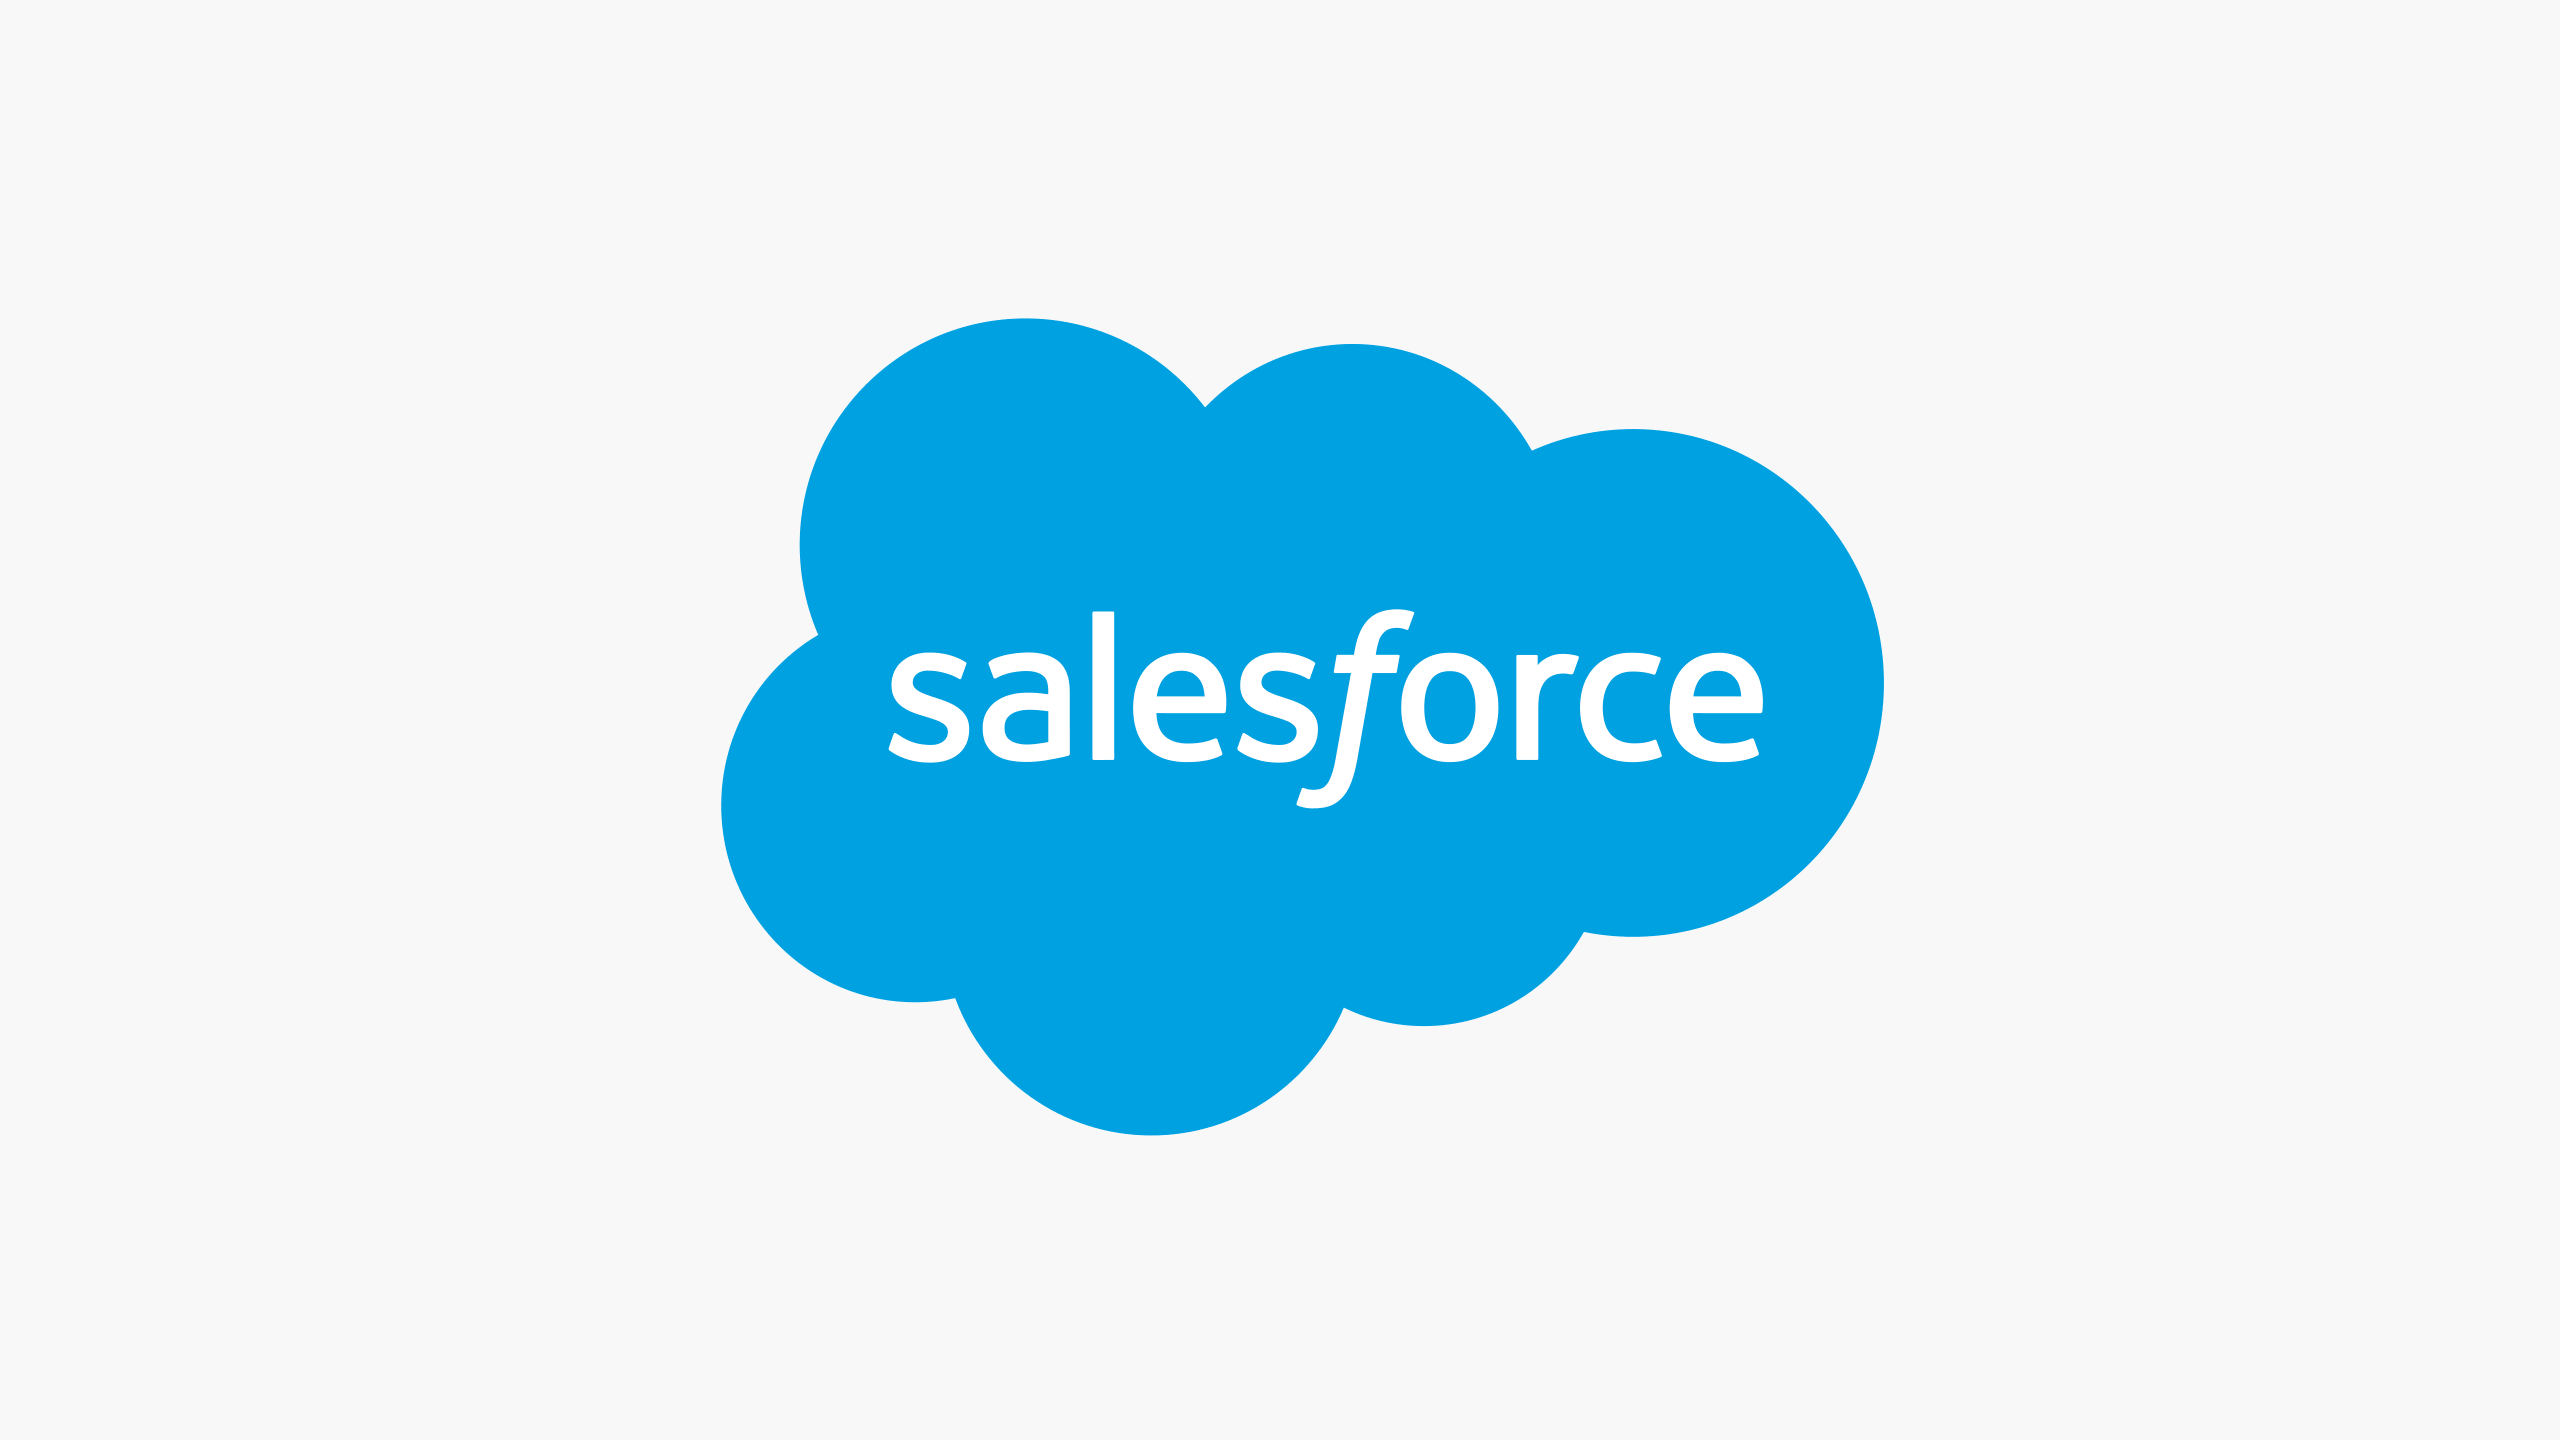 Salesforce in human resource services